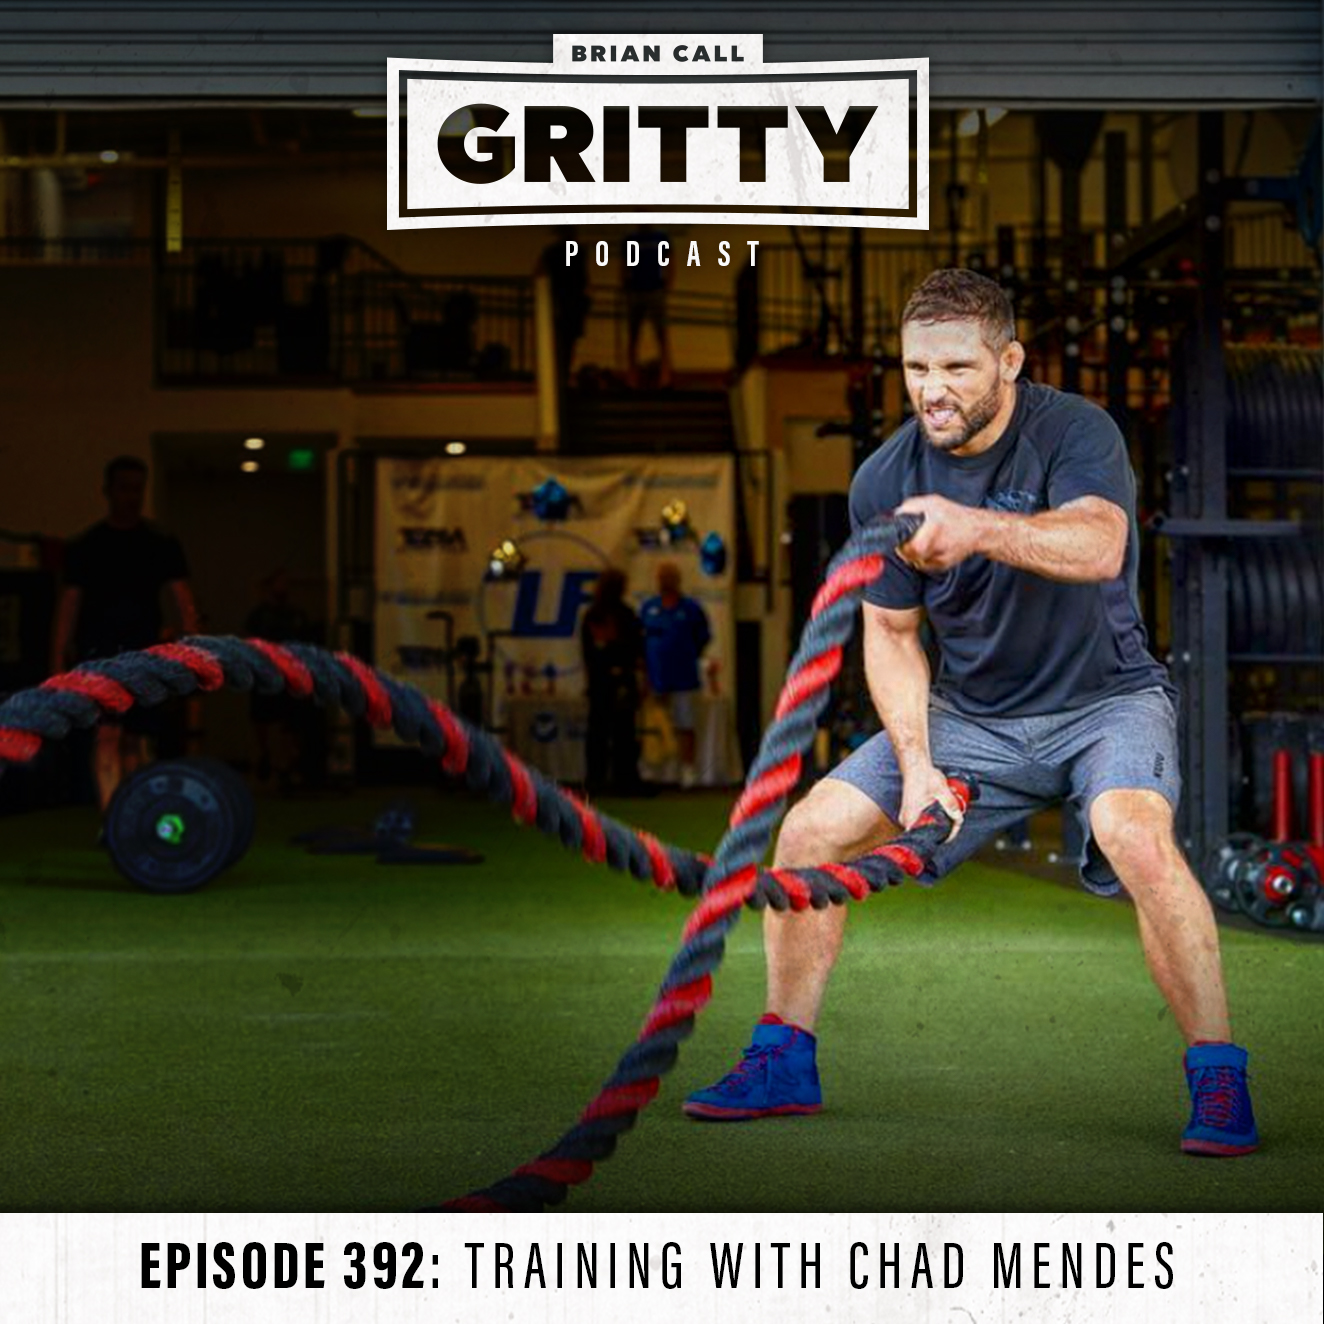 EPISODE 392: TRAINING WITH CHAD MENDES